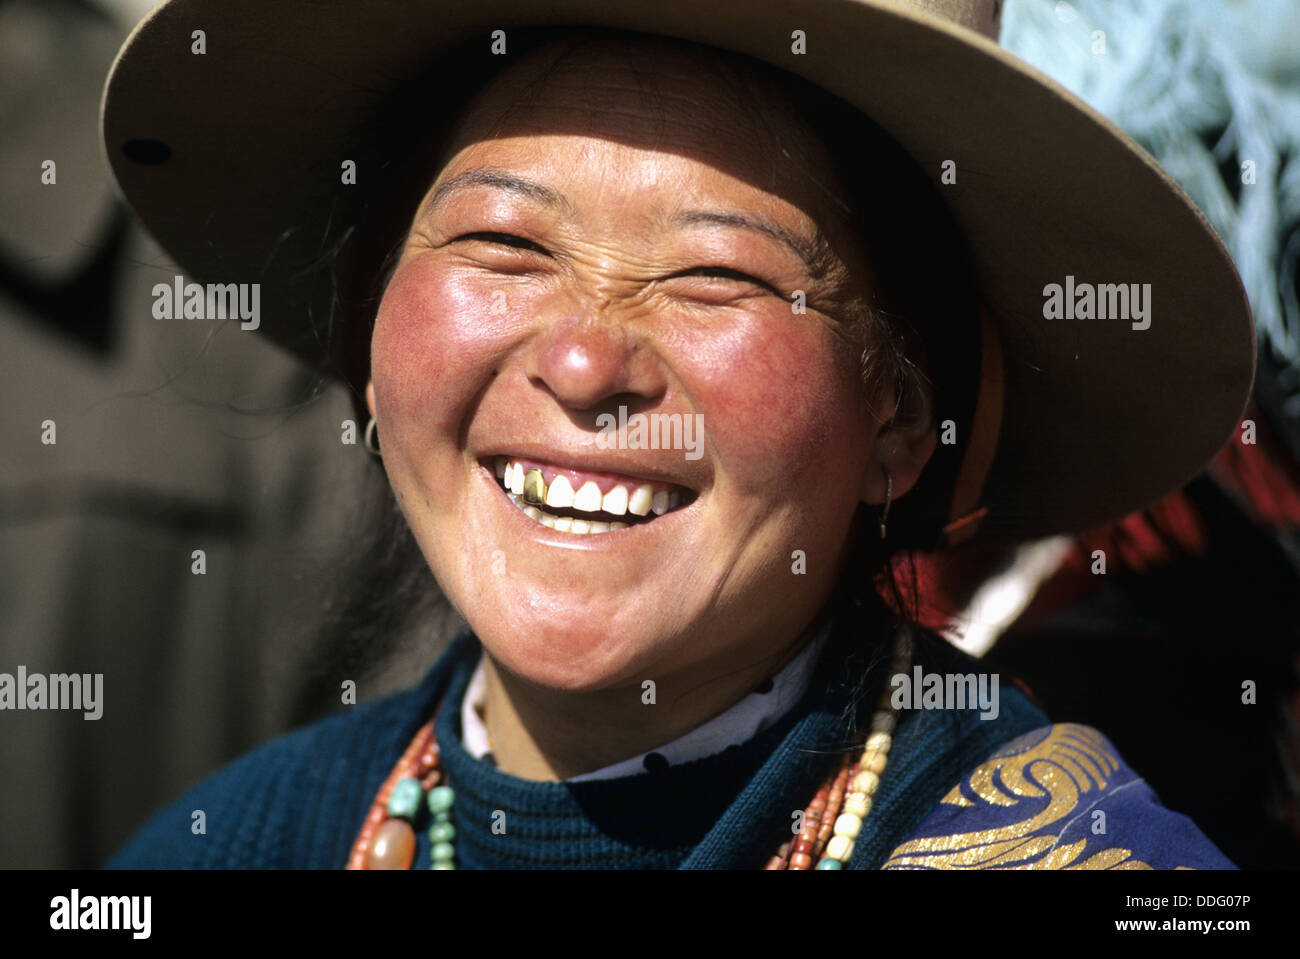 Portrait of a woman in the chinese <b>western province</b> of Qinghai, <b>...</b> - portrait-of-a-woman-in-the-chinese-western-province-of-qinghai-on-DDG07P